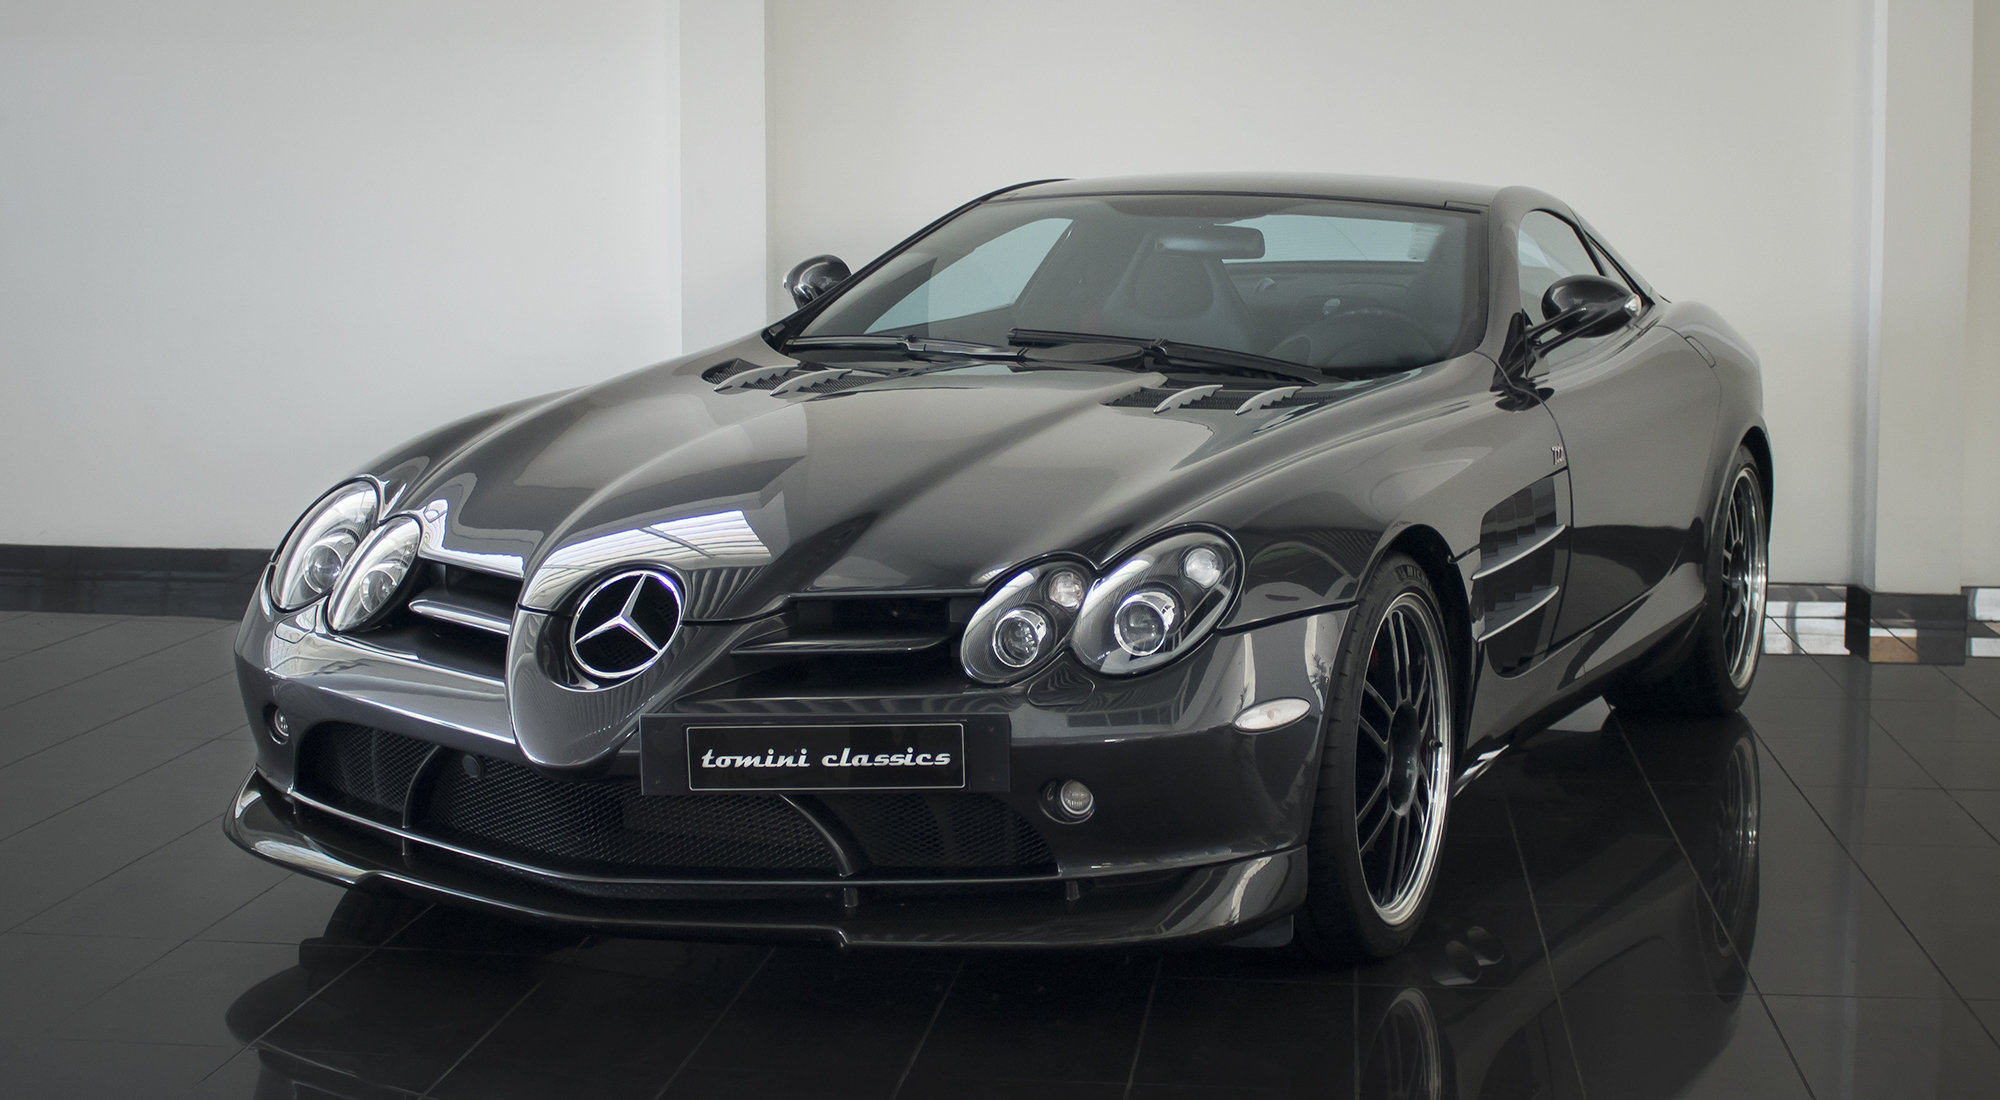 Mercedes-Benz SLR McLaren 722 (2007) For Sale (picture 2 of 6)